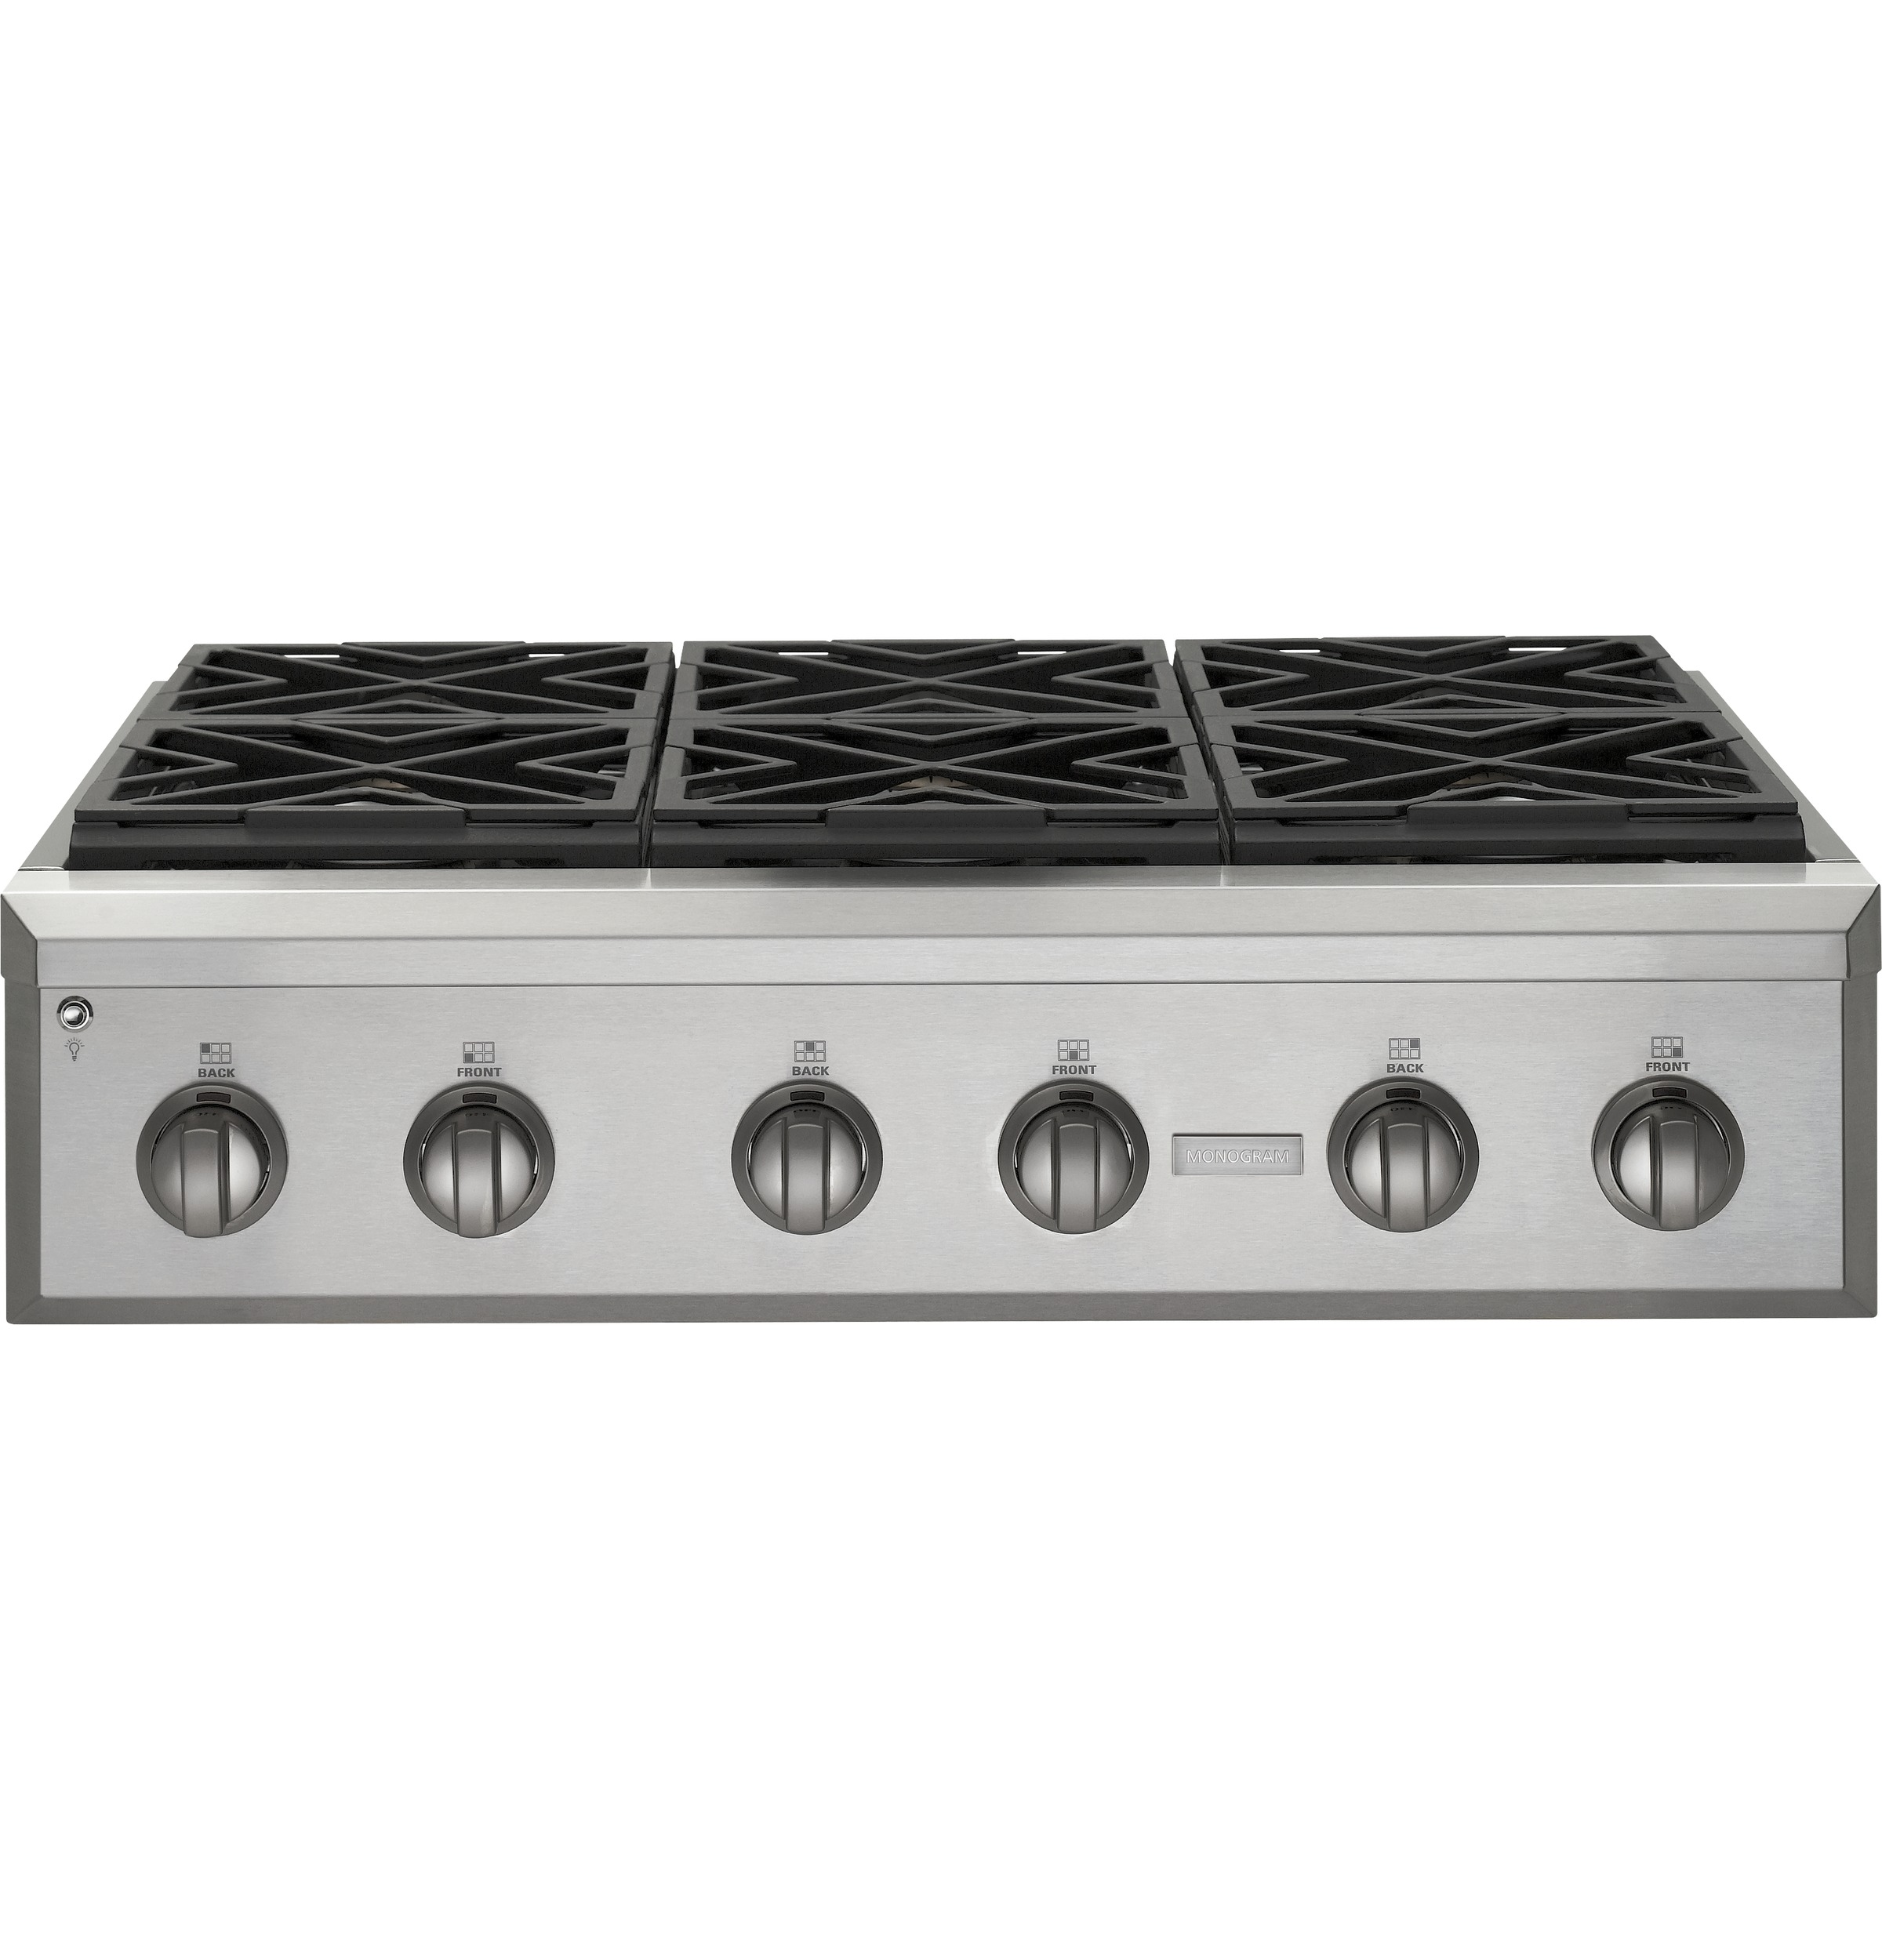 "Model: ZGU366NPSS | Monogram Monogram 36"" Professional Gas Rangetop with 6 Burners (Natural Gas)"